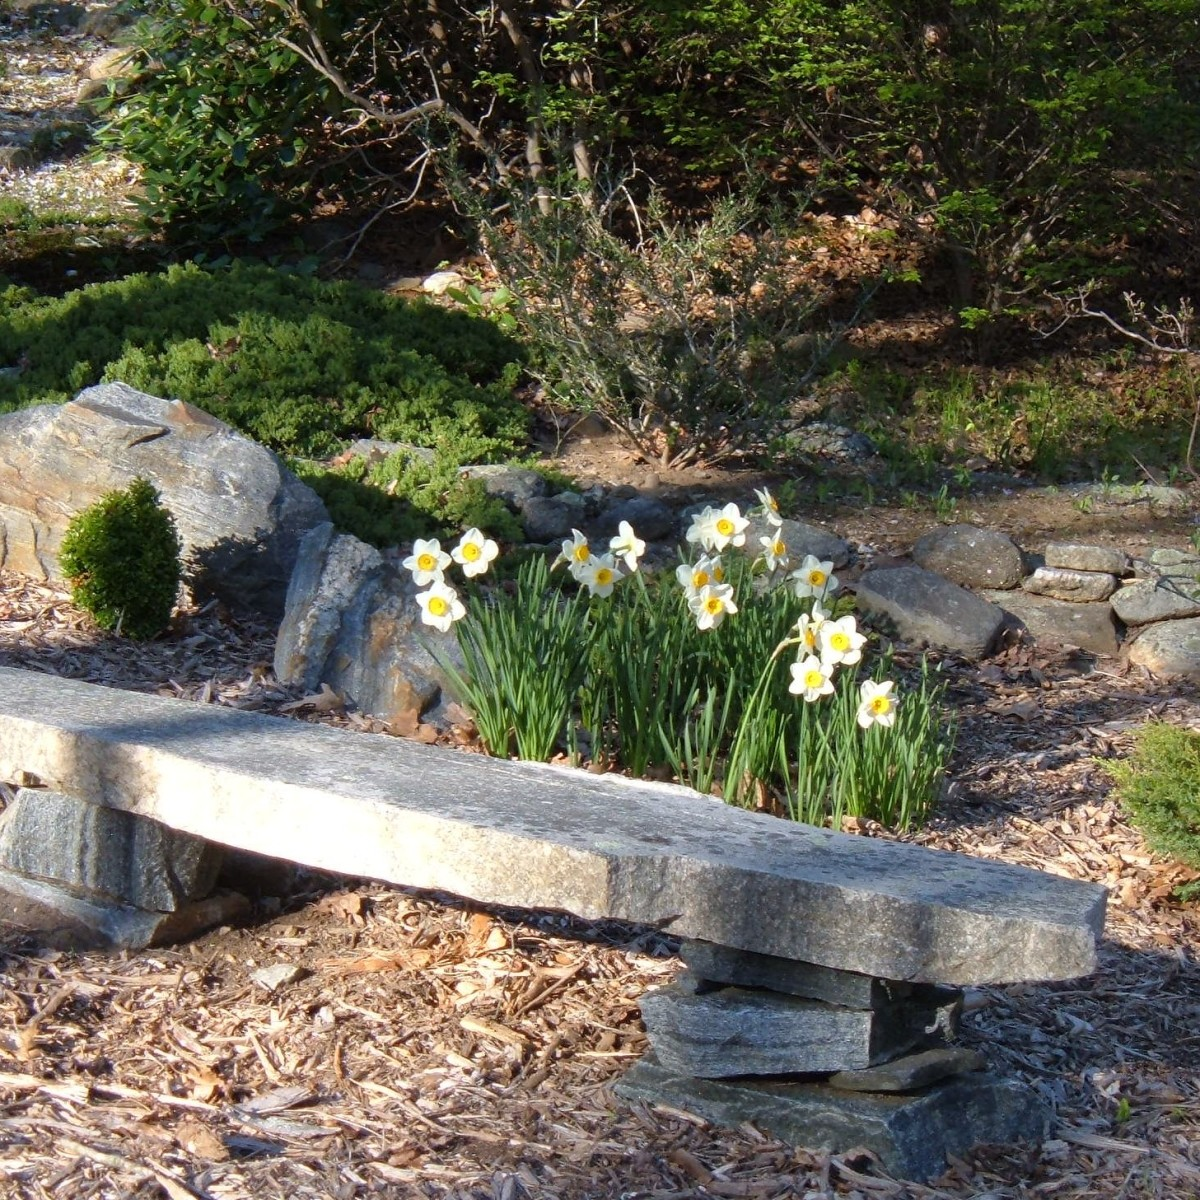 We turned a slab of stone into a natural stone bench